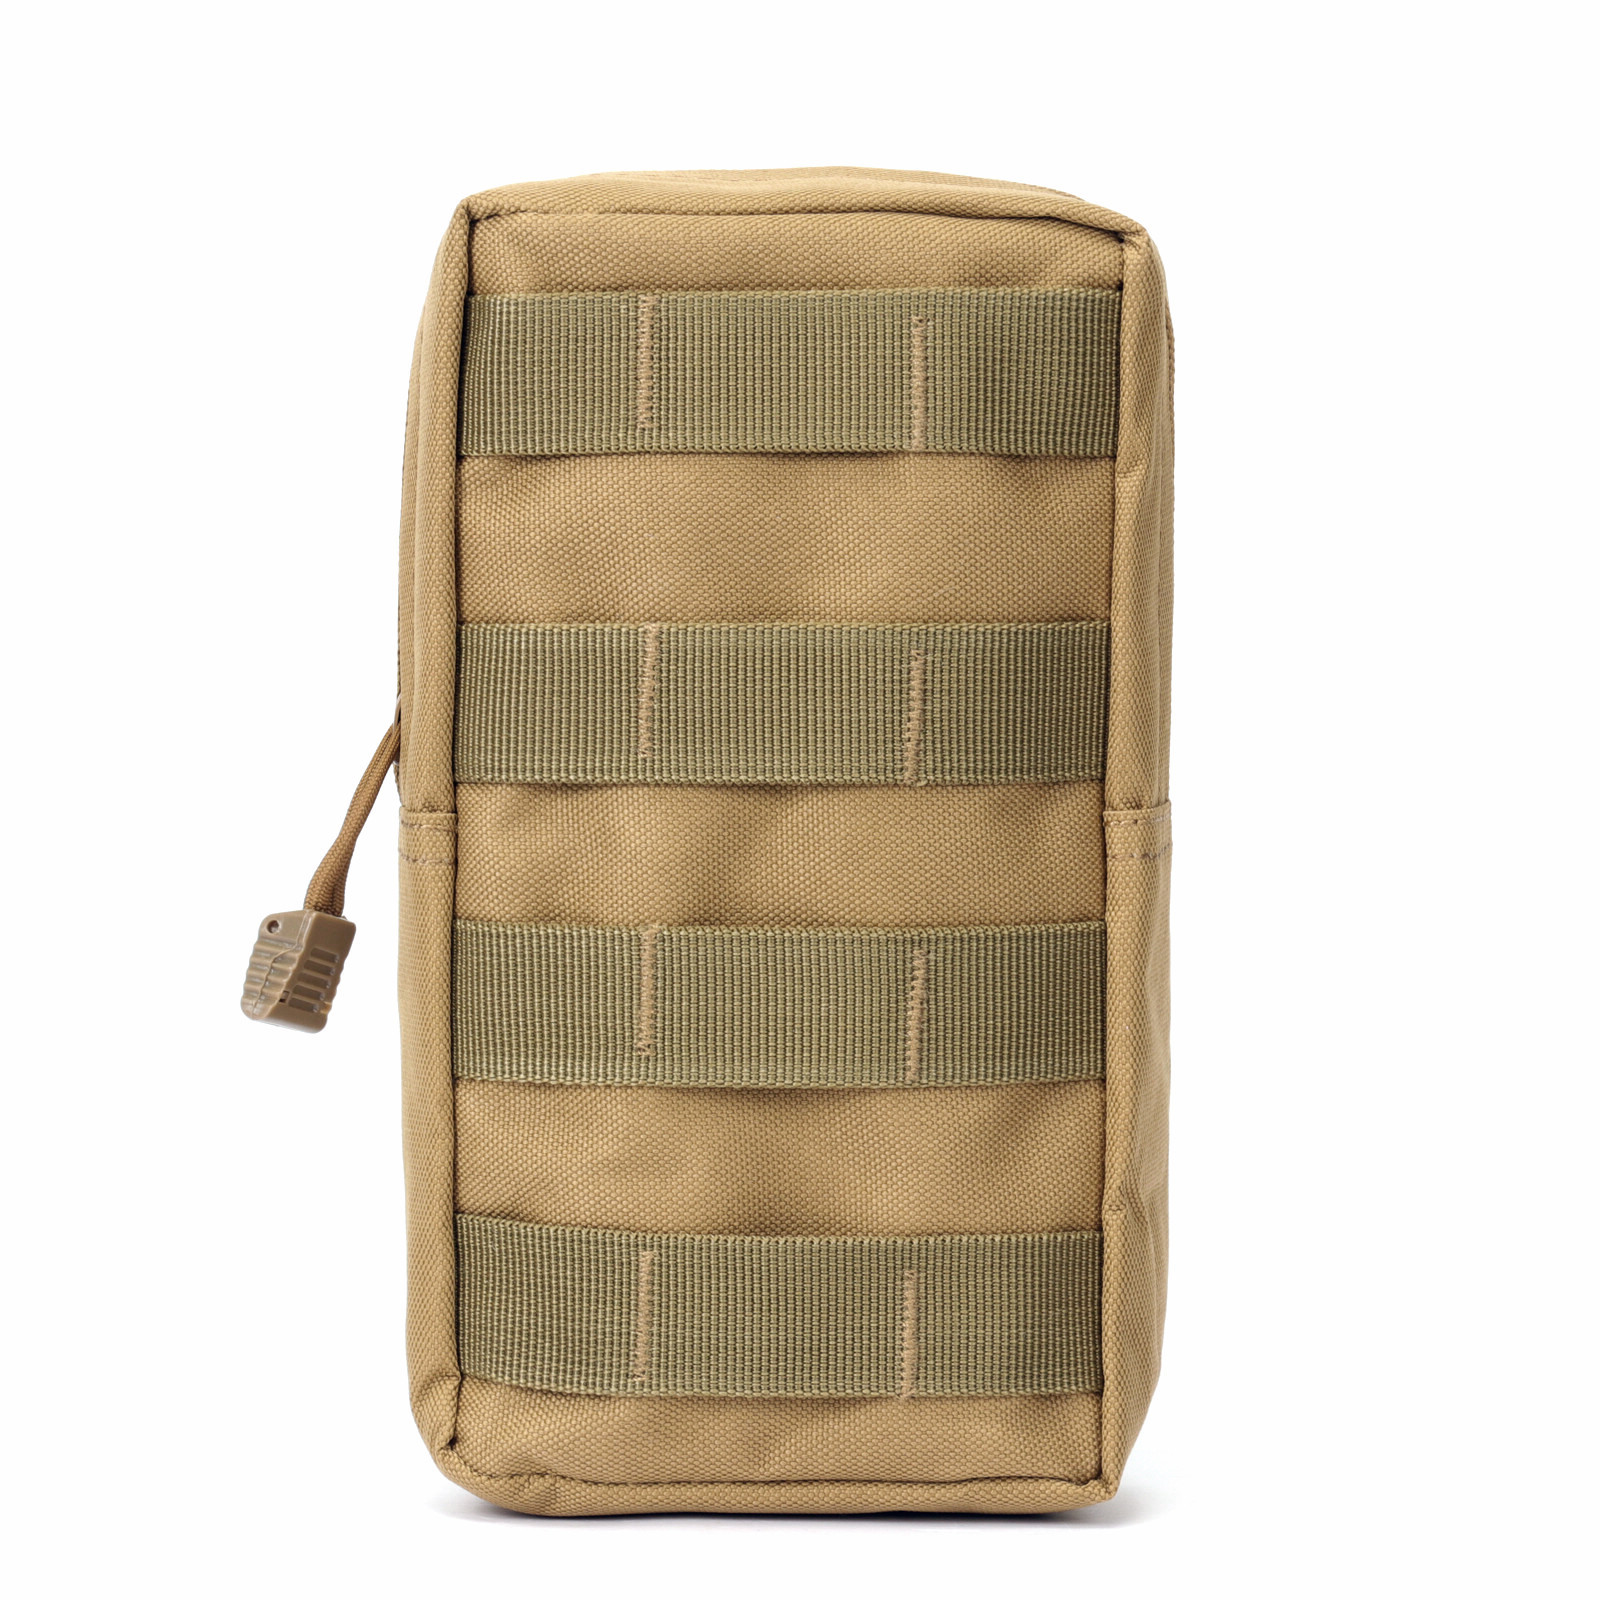 Molle Portable First Aid Kit Outdoor Emergency Medical Kit Tactical Vest Accessory Kit Ditty Bag Storgage Bag